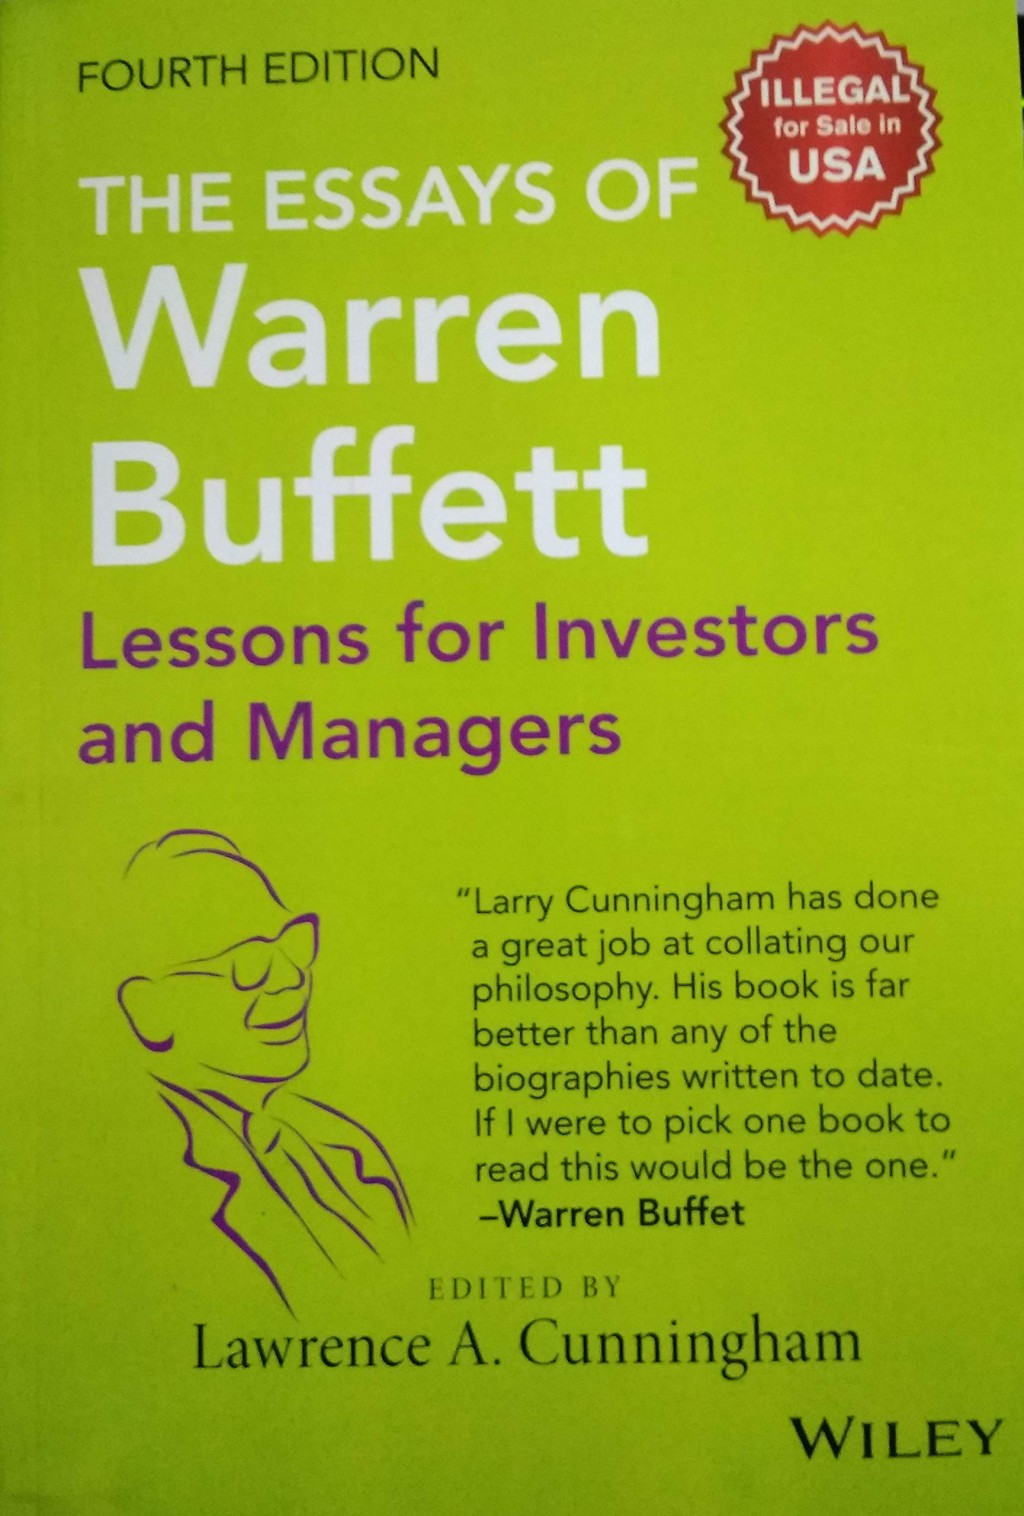 004 Essay Example 81k2r32ddul The Essays Of Warren Buffett Lessons For Investors And Striking Managers 4th Edition Free Pdf Large